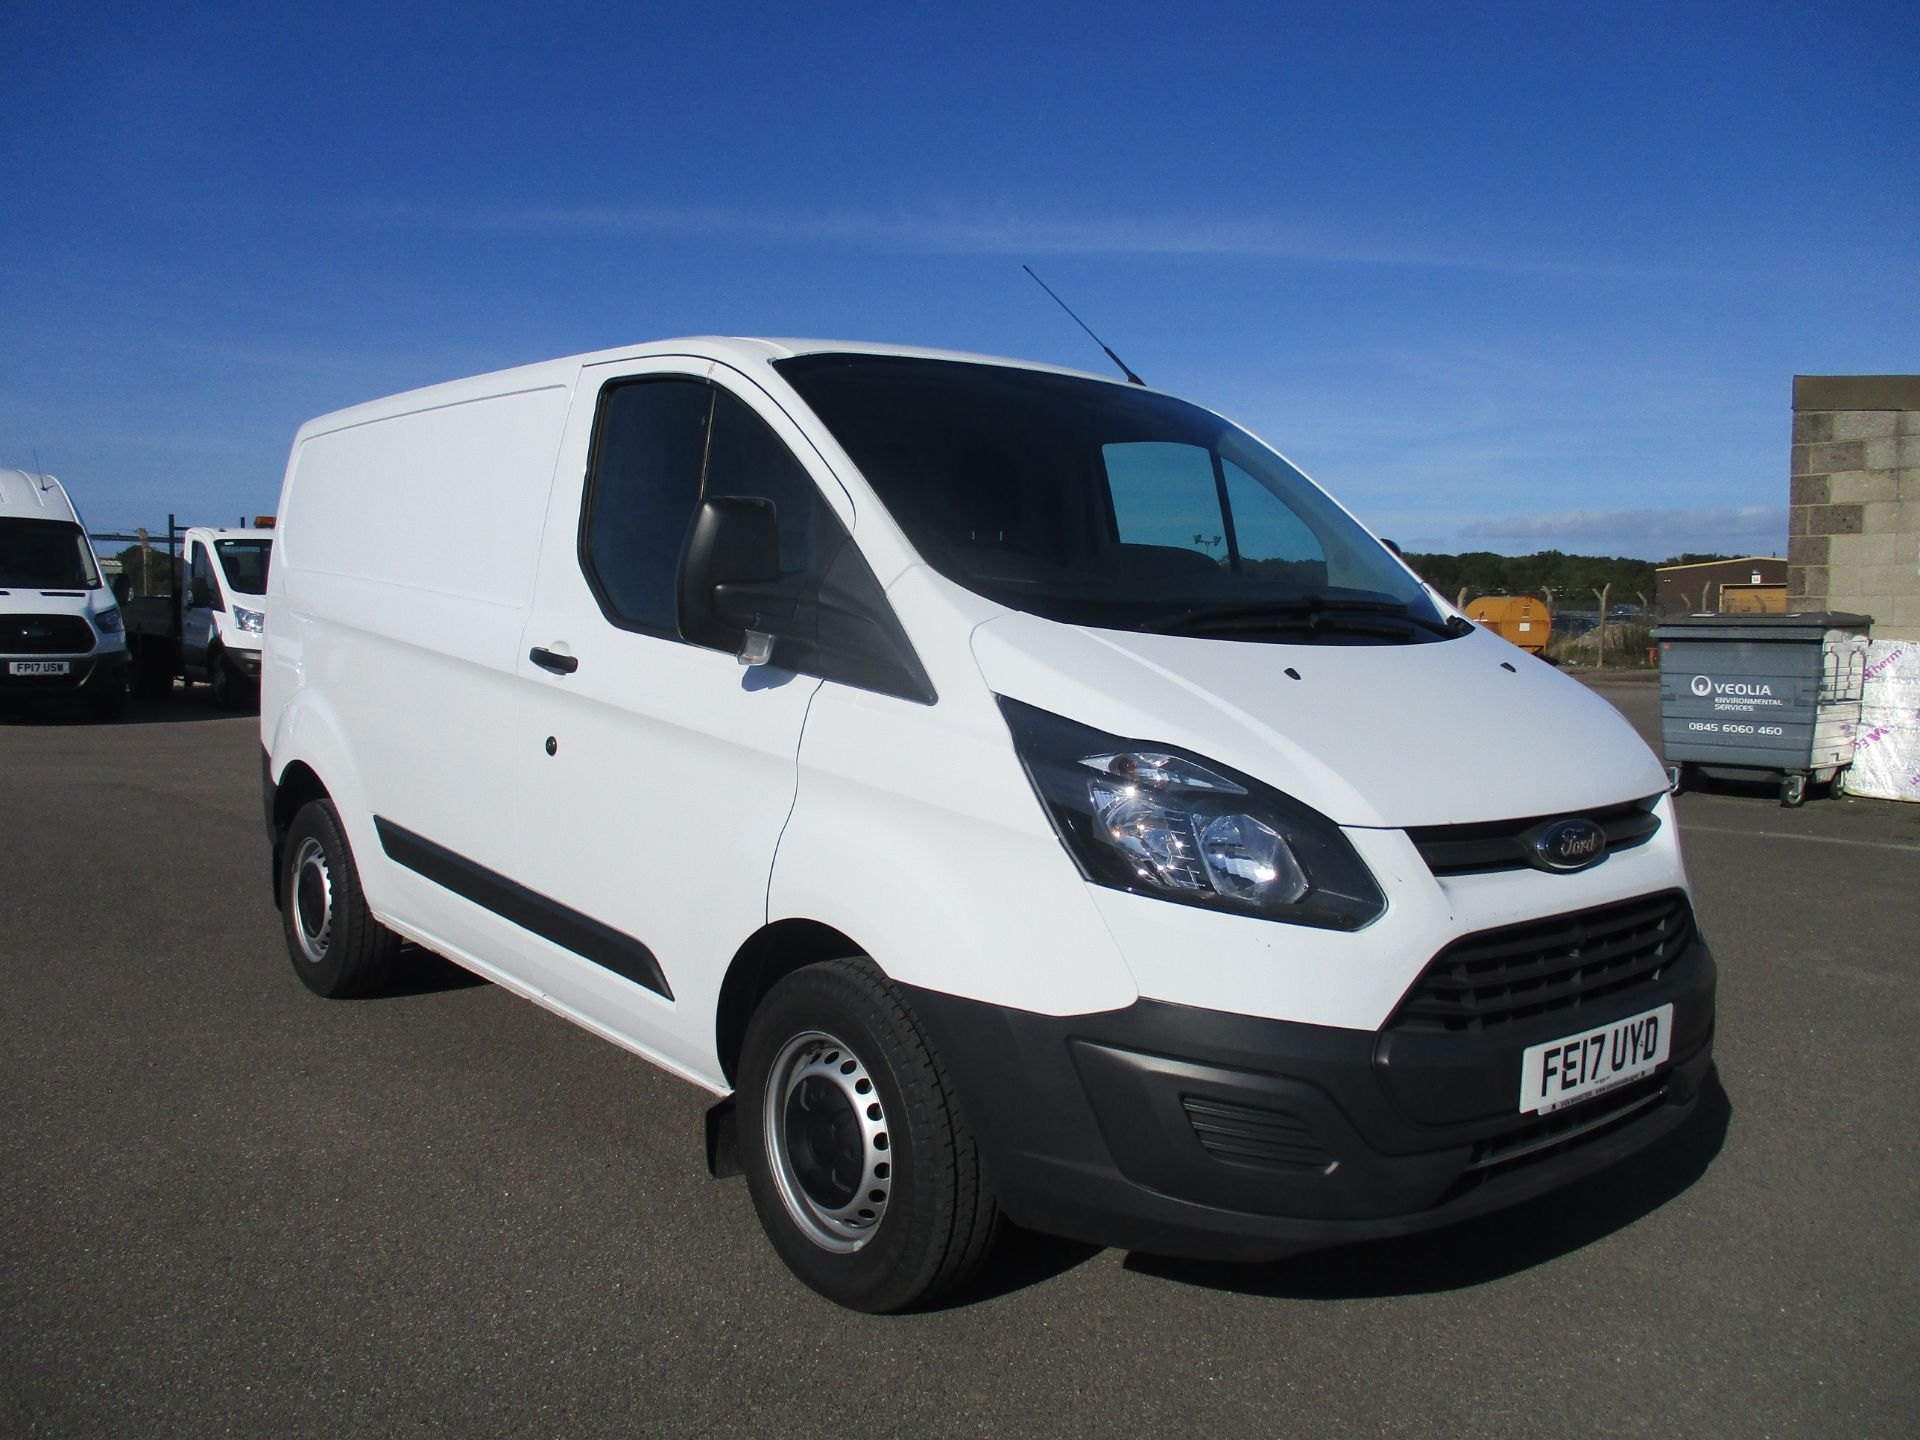 2017 Ford Transit Custom 290 L1 DIESEL FWD 2.0 TDCI 105PS LOW ROOF VAN EURO 6 (FE17UYD)